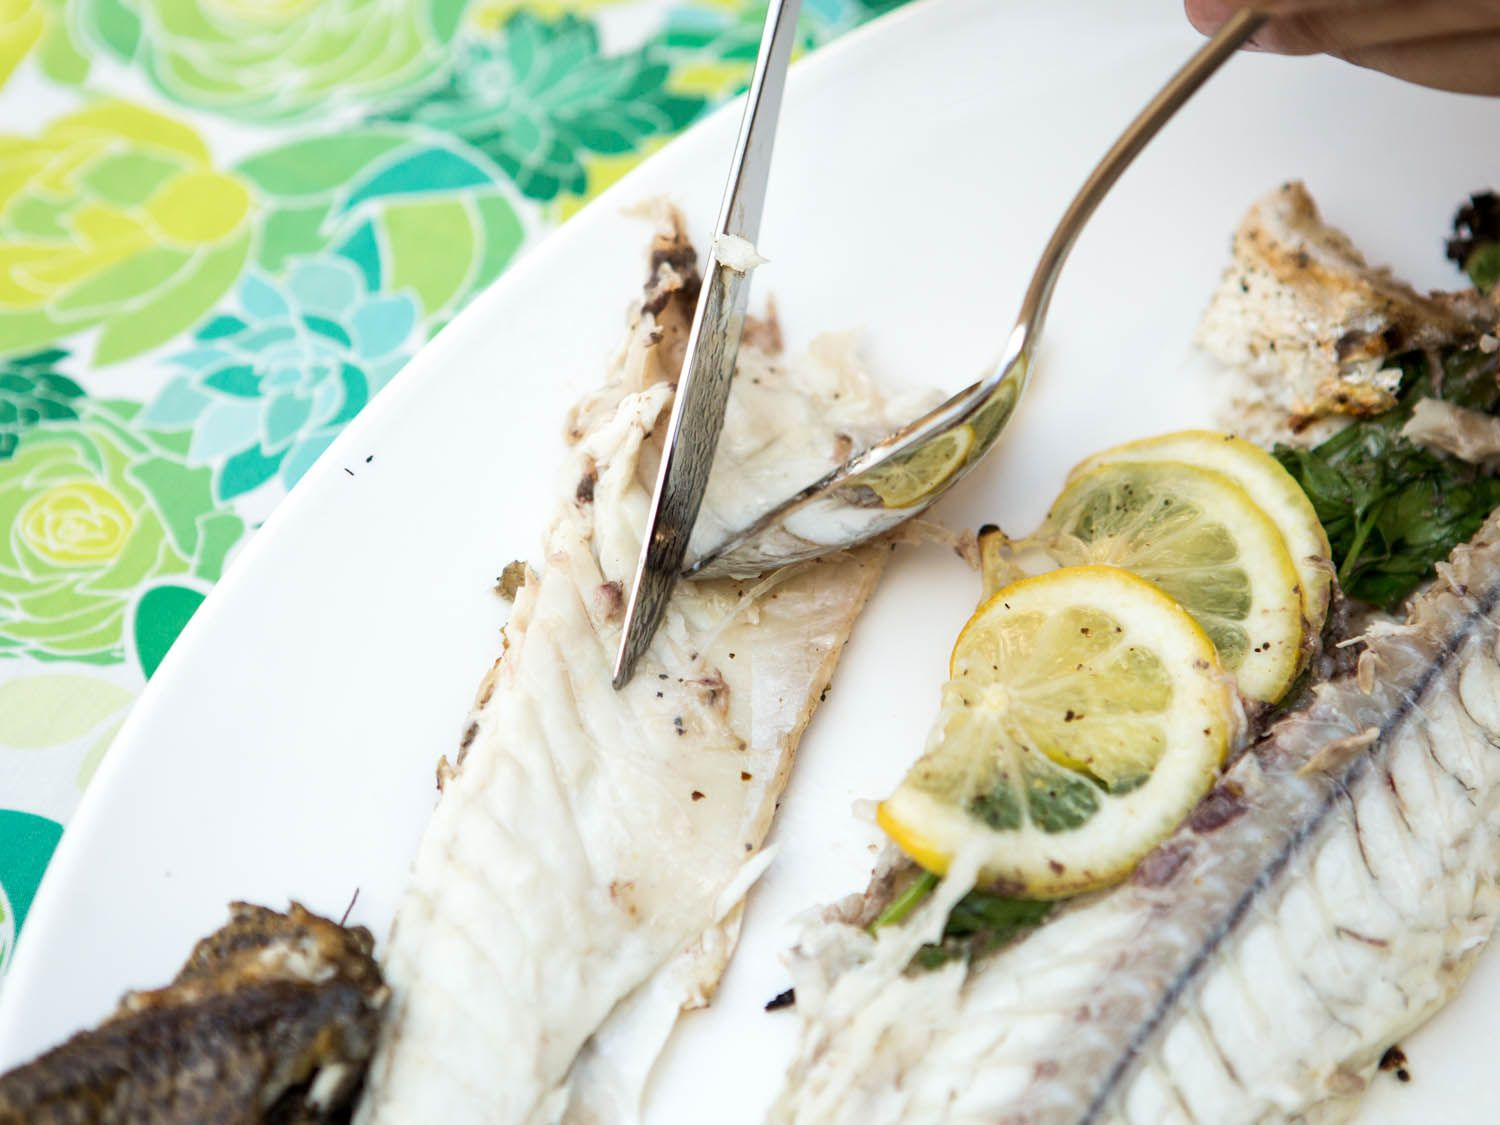 20140708-how-to-serve-whole-fish-vicky-wasik-19.jpg